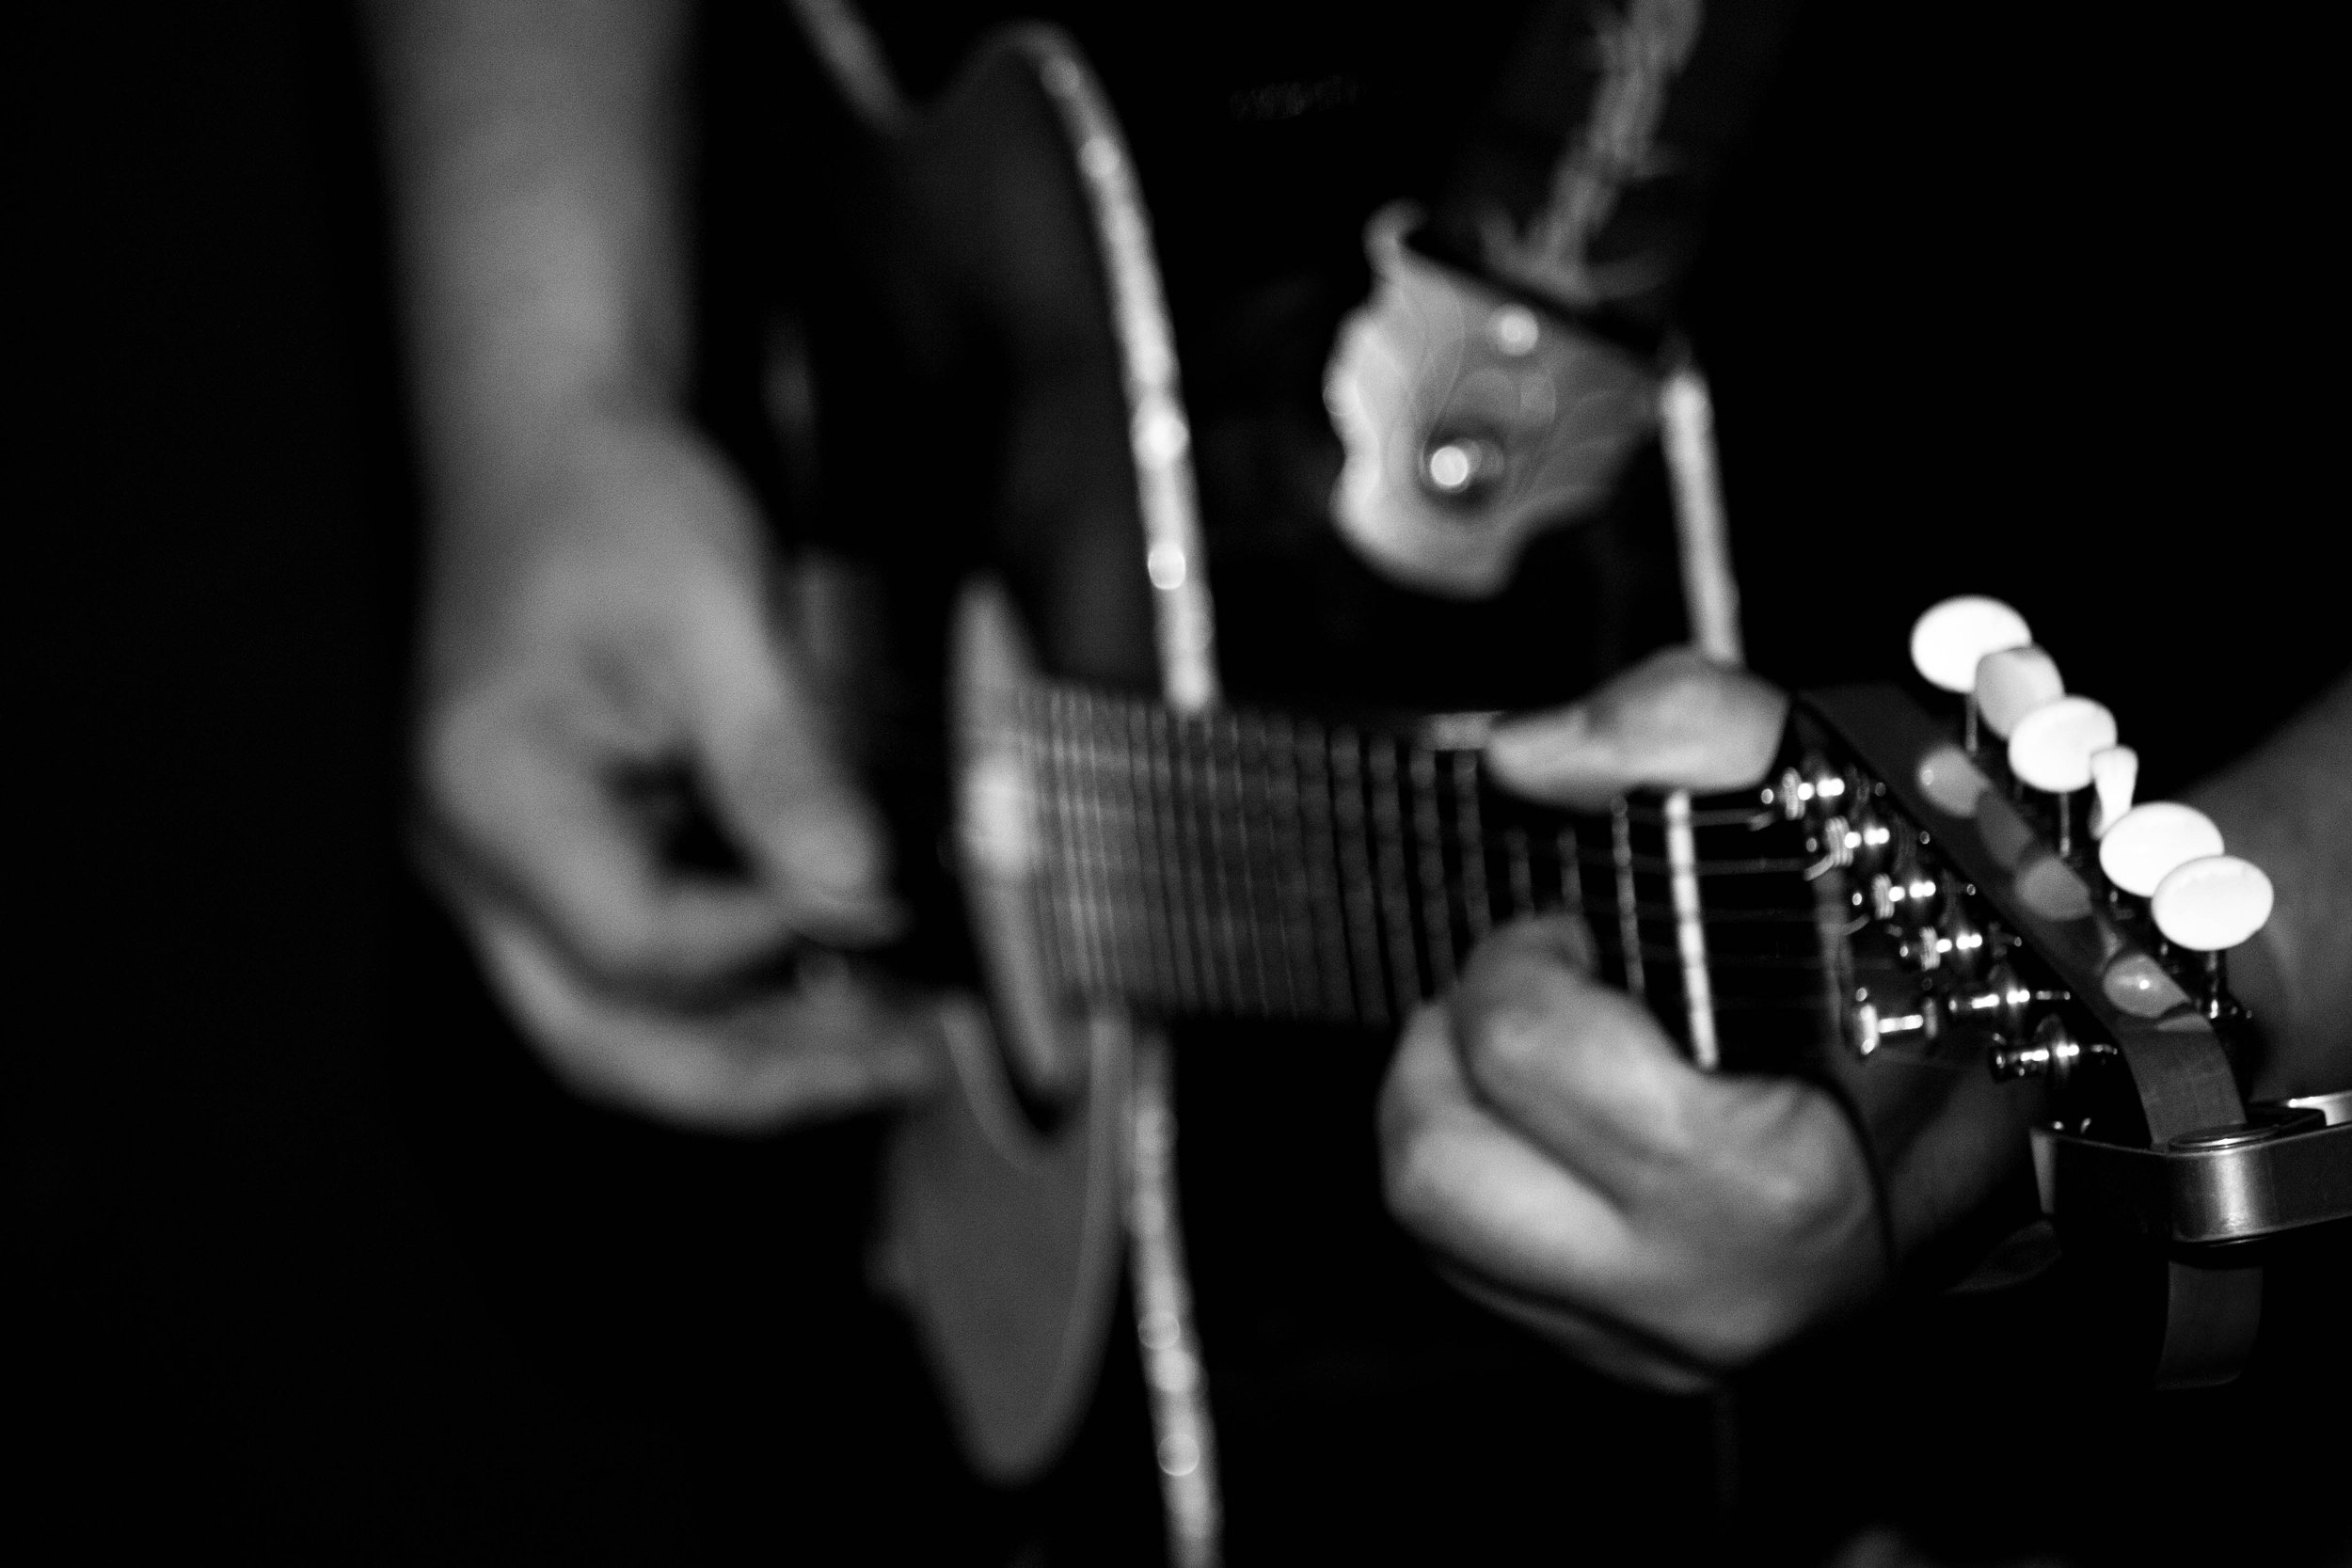 GUITAR HANDS B&W.JPG